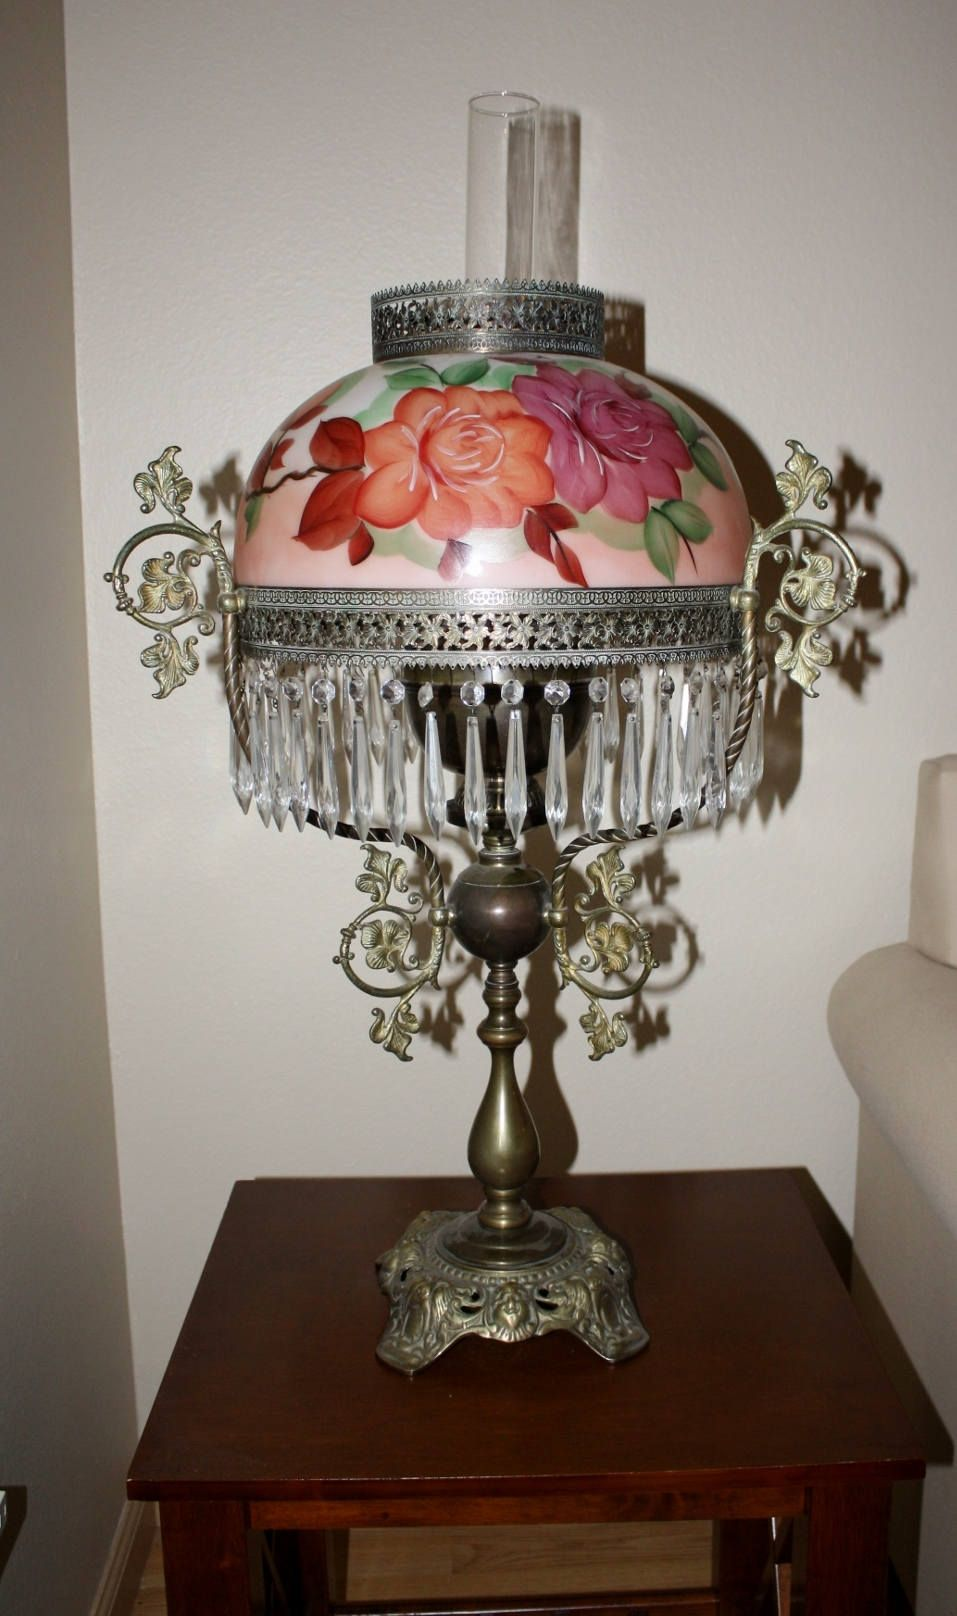 Antique victorian oil table lamp pink floral handpainted hanging antique victorian oil table lamp pink floral handpainted hanging prisms 1800s oil lamp geotapseo Gallery